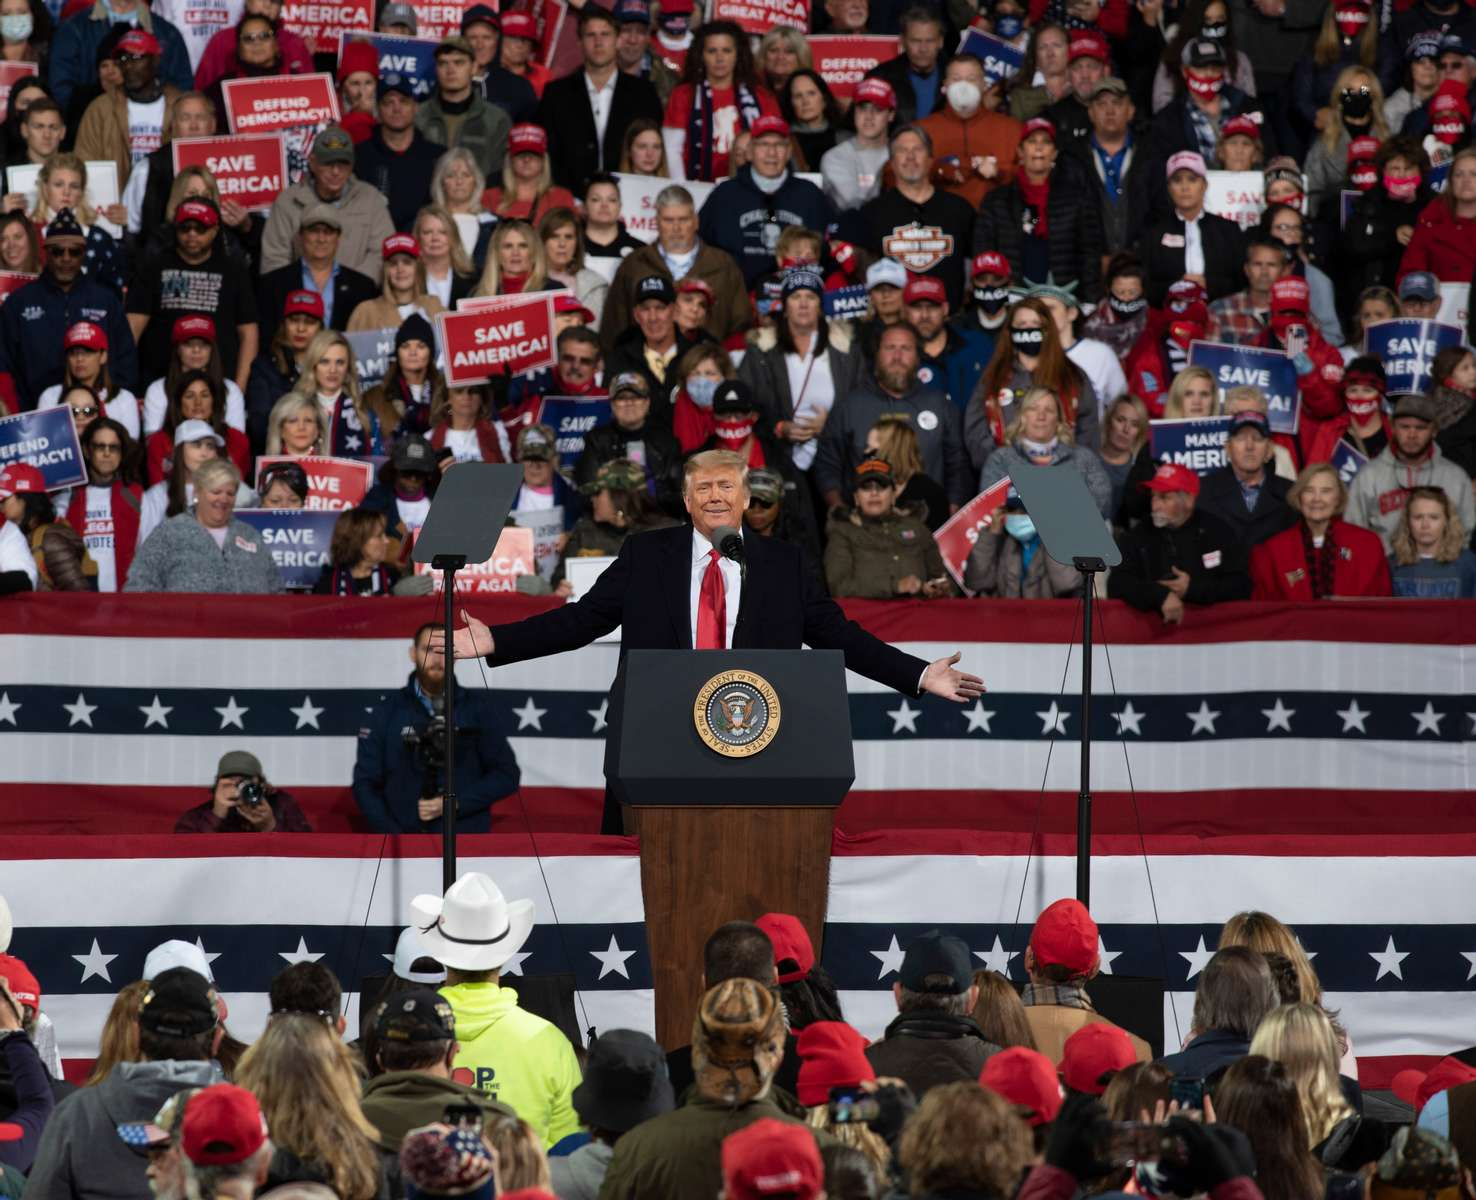 Thousands of Trump supporters converged on small town for Georgia Victory Rally to show support for President Donald Trump and two Republican incumbent U.S. senators Kelly Loeffler and David Perdue, who face democratic challengers in special run run-off election January 5, 2021. The election could decide control of the U.S. Senate.